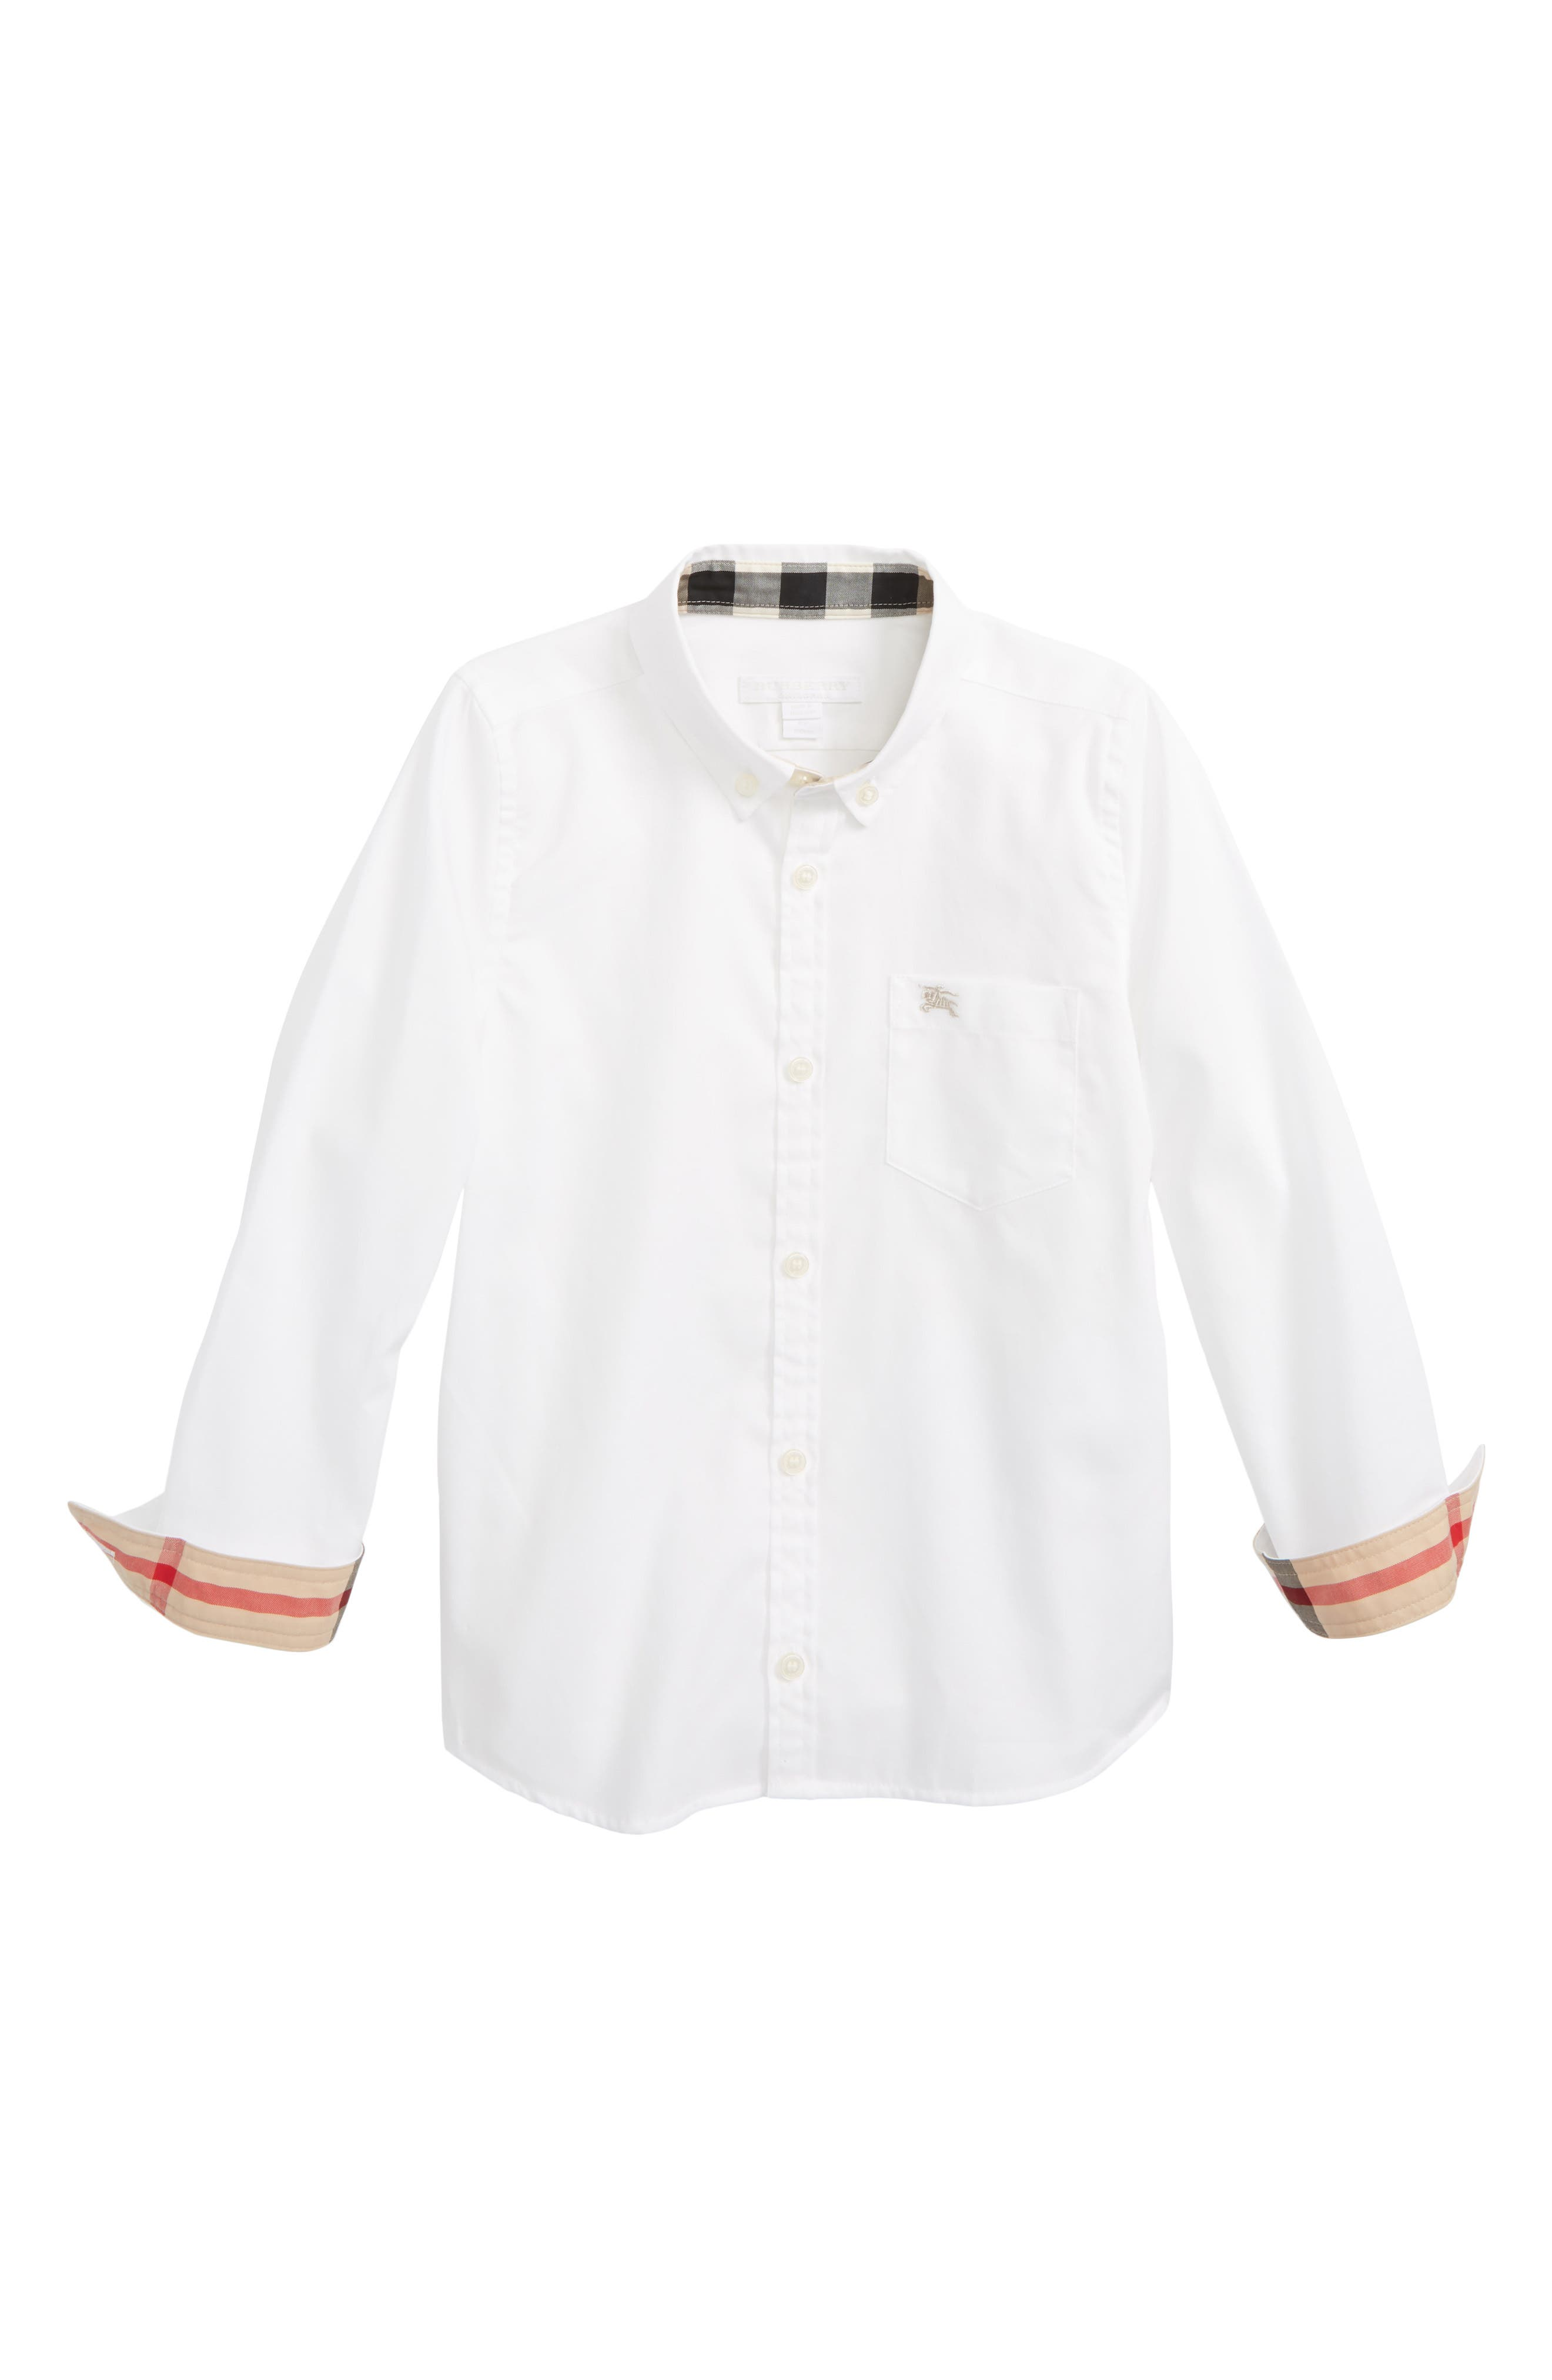 BURBERRY,                             Fred Woven Shirt,                             Main thumbnail 1, color,                             100